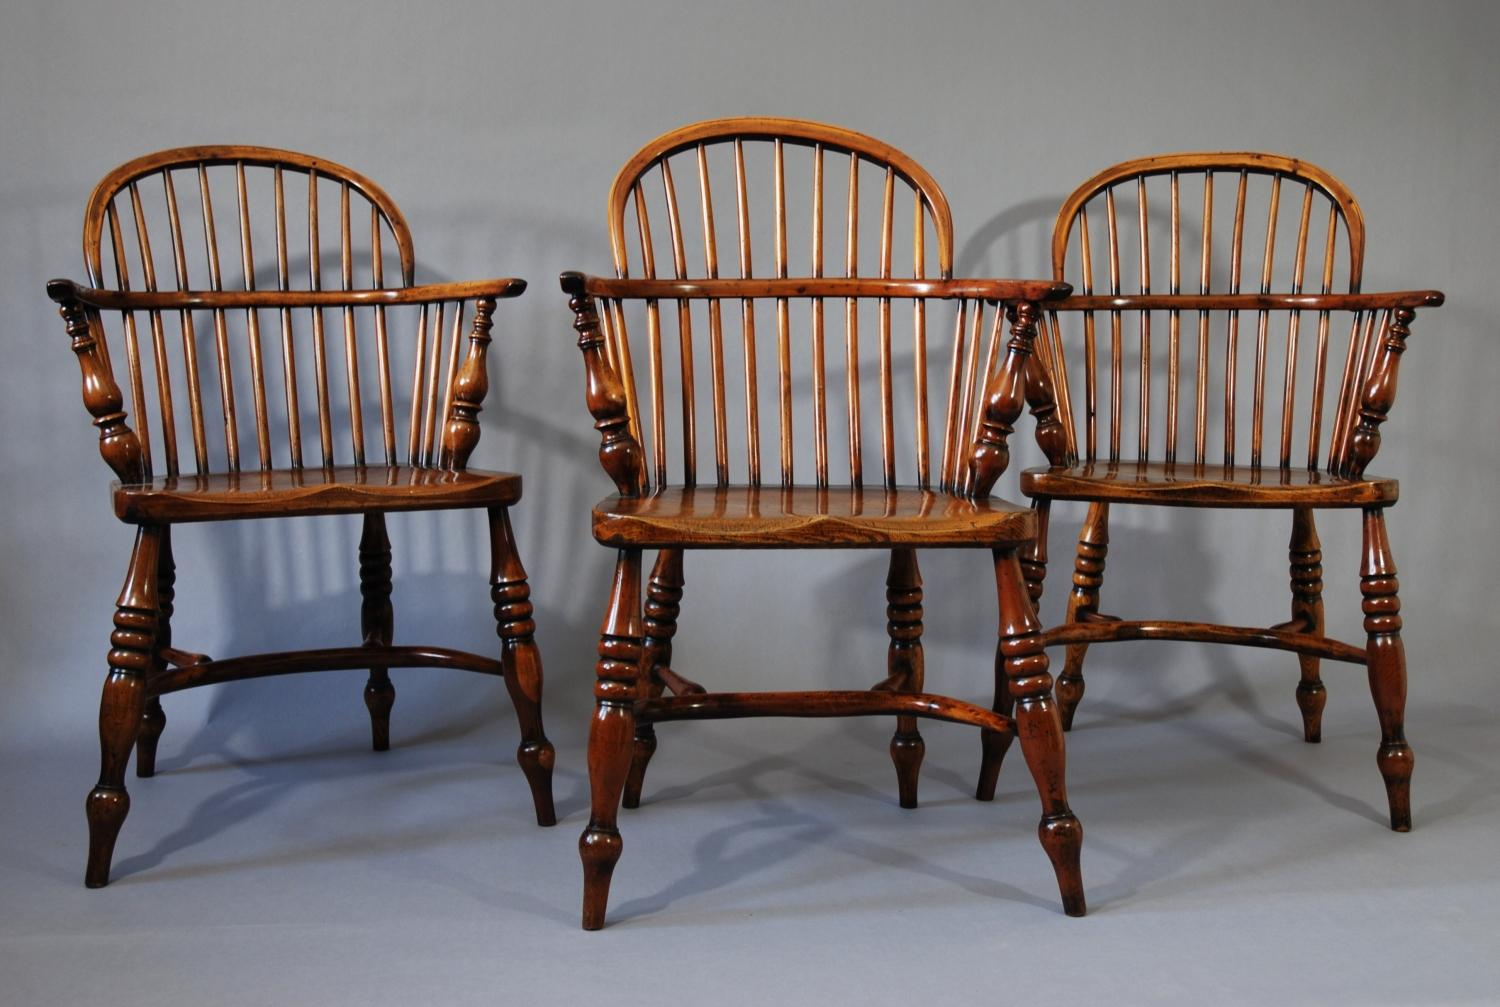 Set of six yew wood low-back windsor chairs